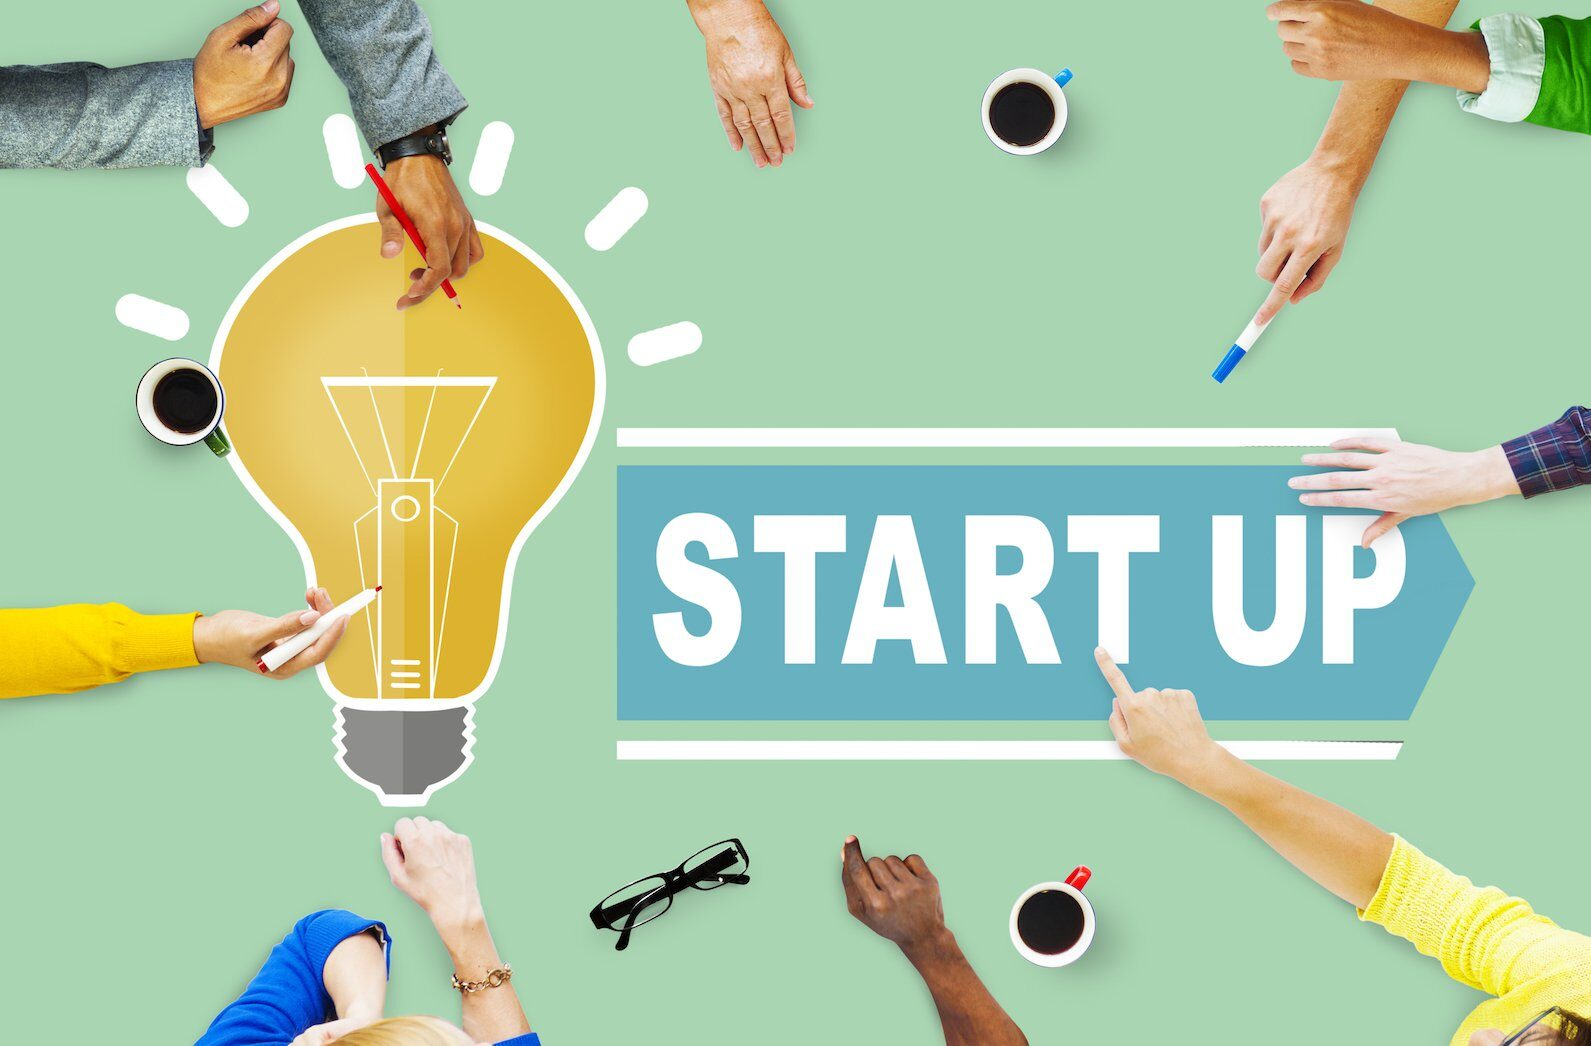 How to Create a Startup From Idea To Successful Business